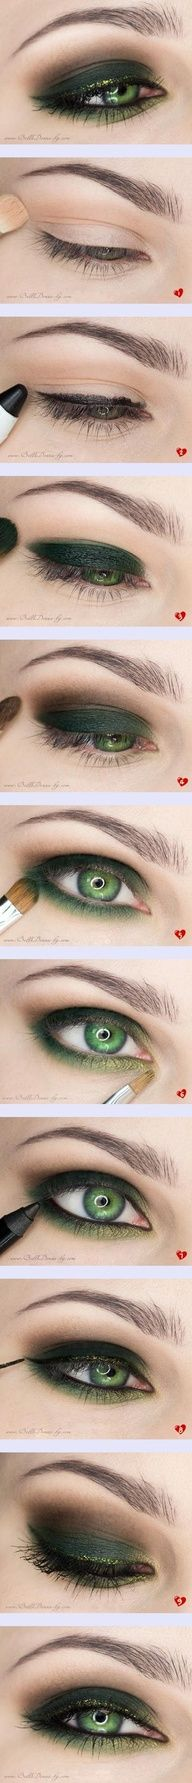 St. Patrick's Day makeup idea